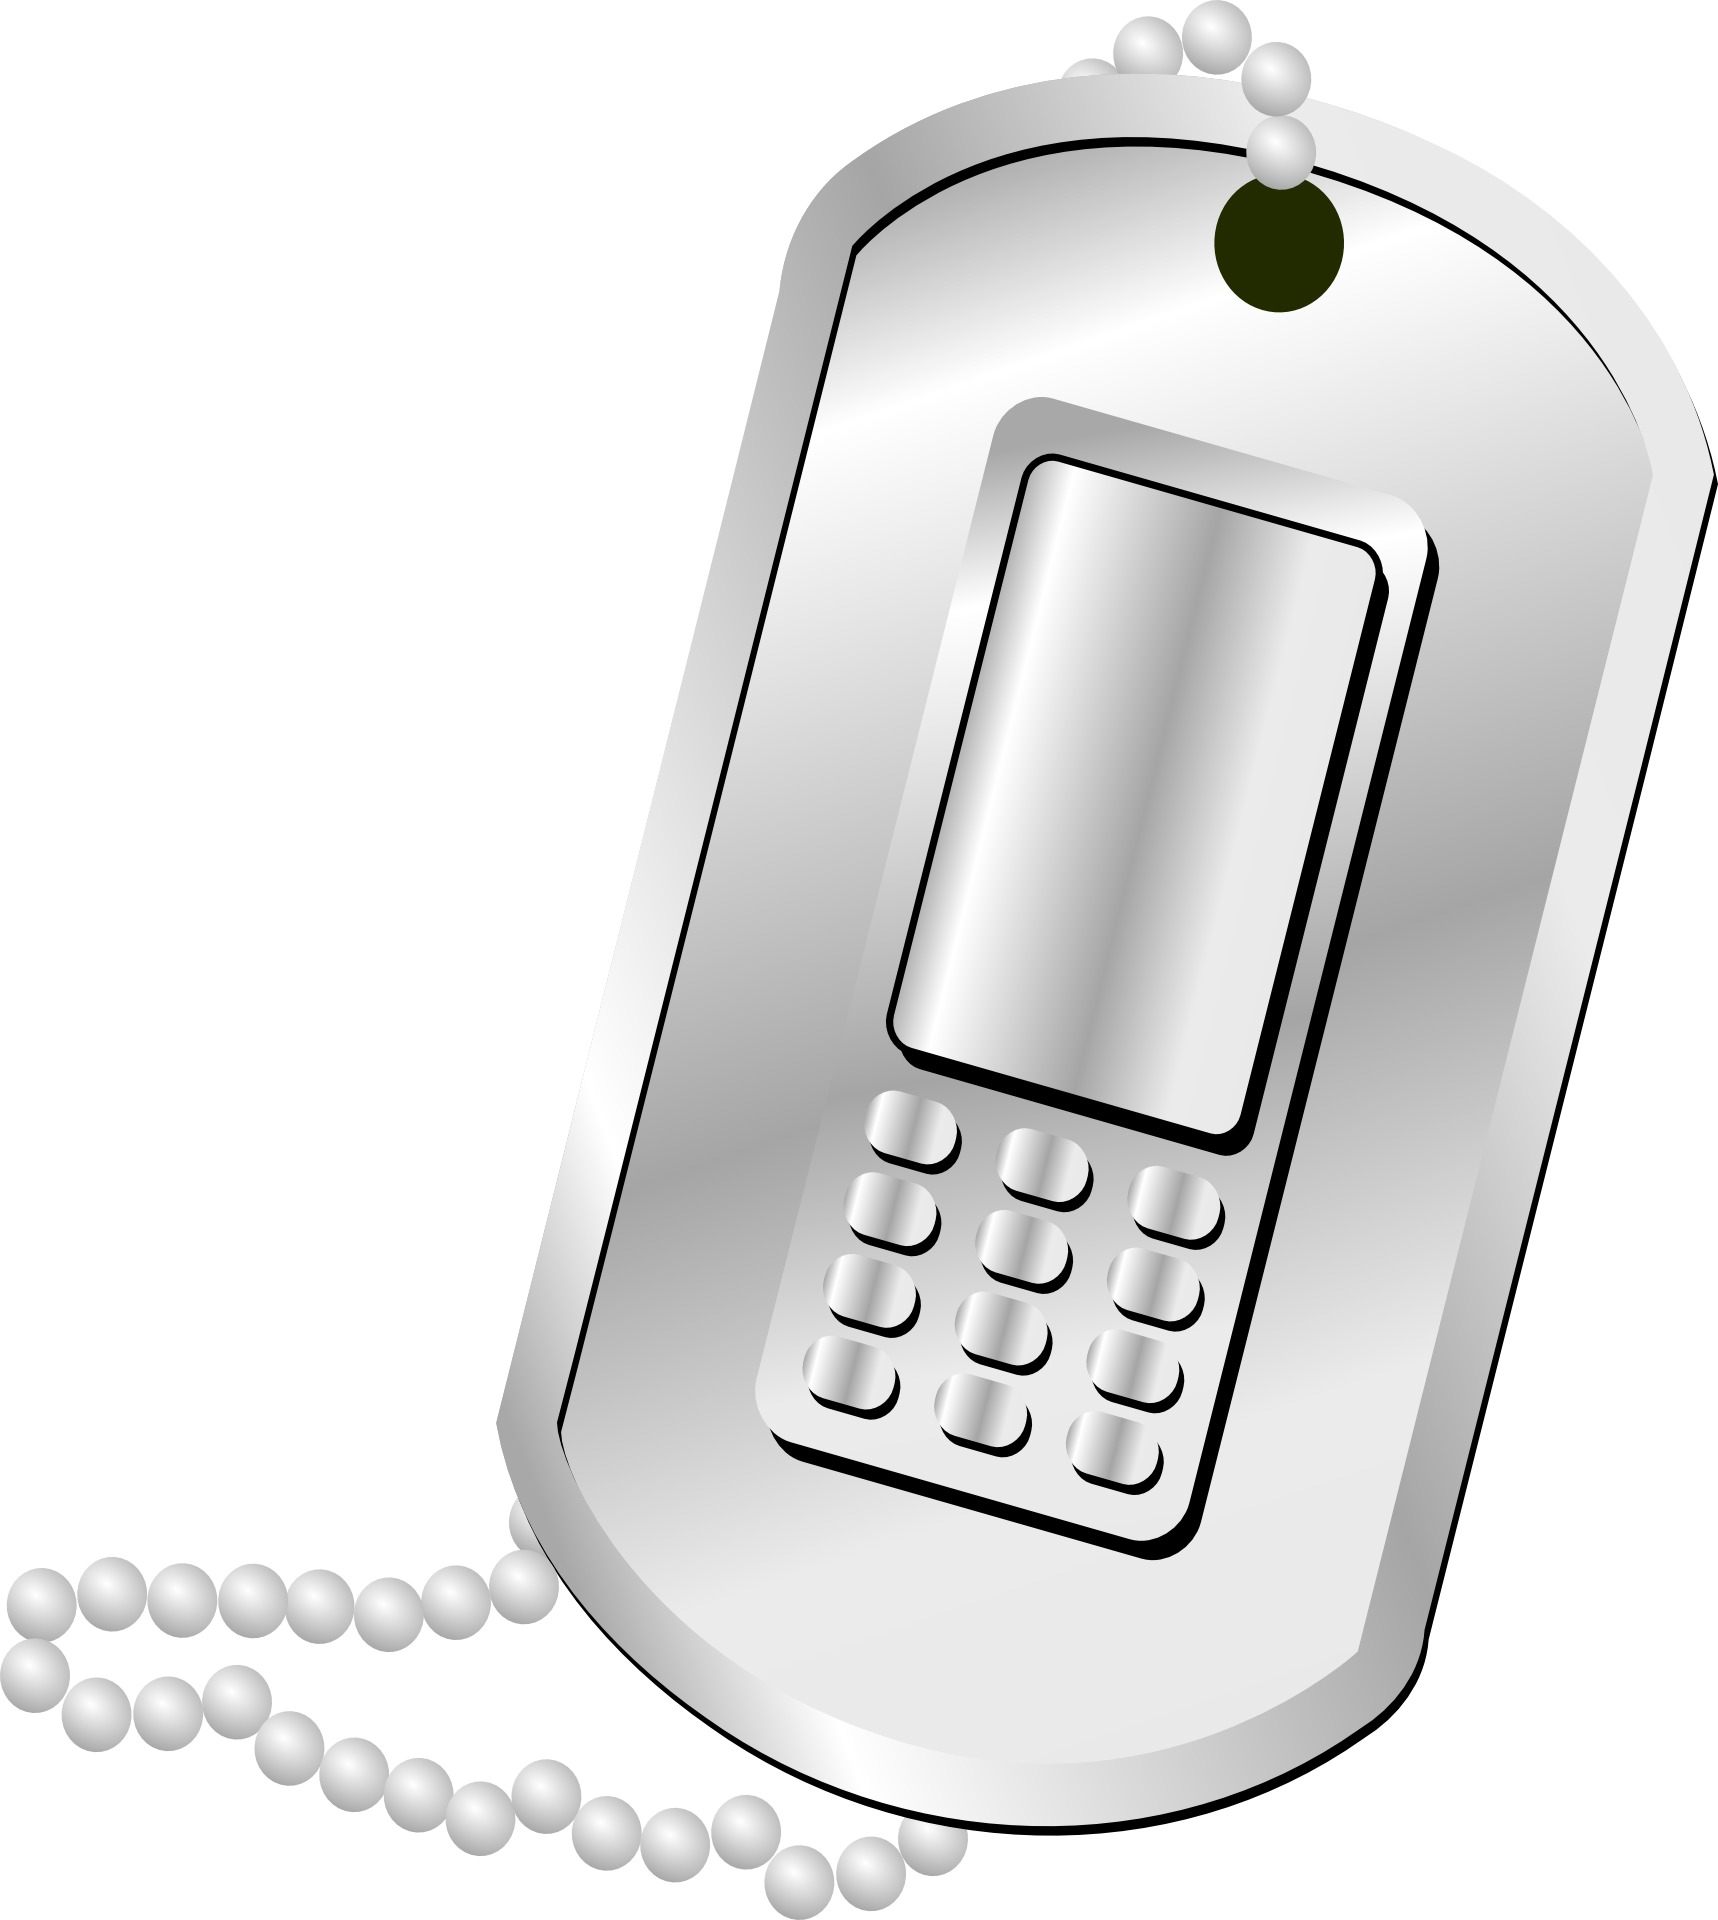 Telephone clipart phone computer. Icons clip art cell